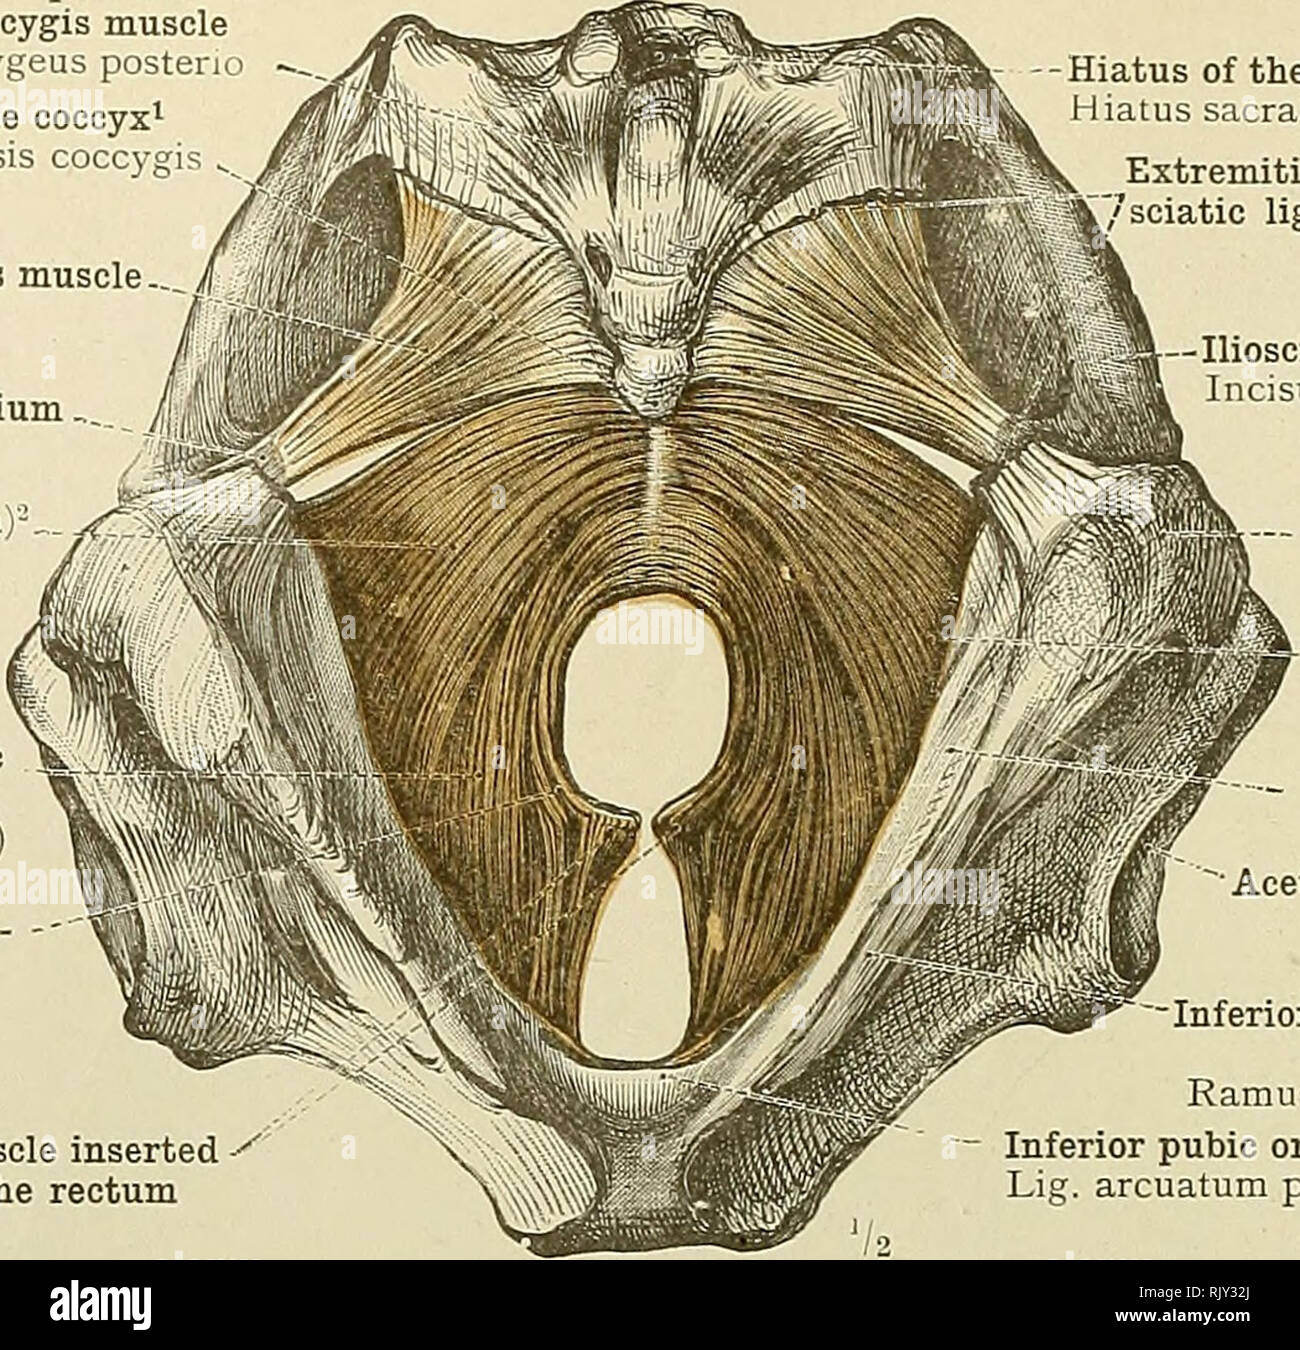 hight resolution of 530 muscles of the perineum sacrococoygeus posticus or extensor ooccygis muscle m sacrococcygeus posteric tip of the coccyx apex os31s coccjgis